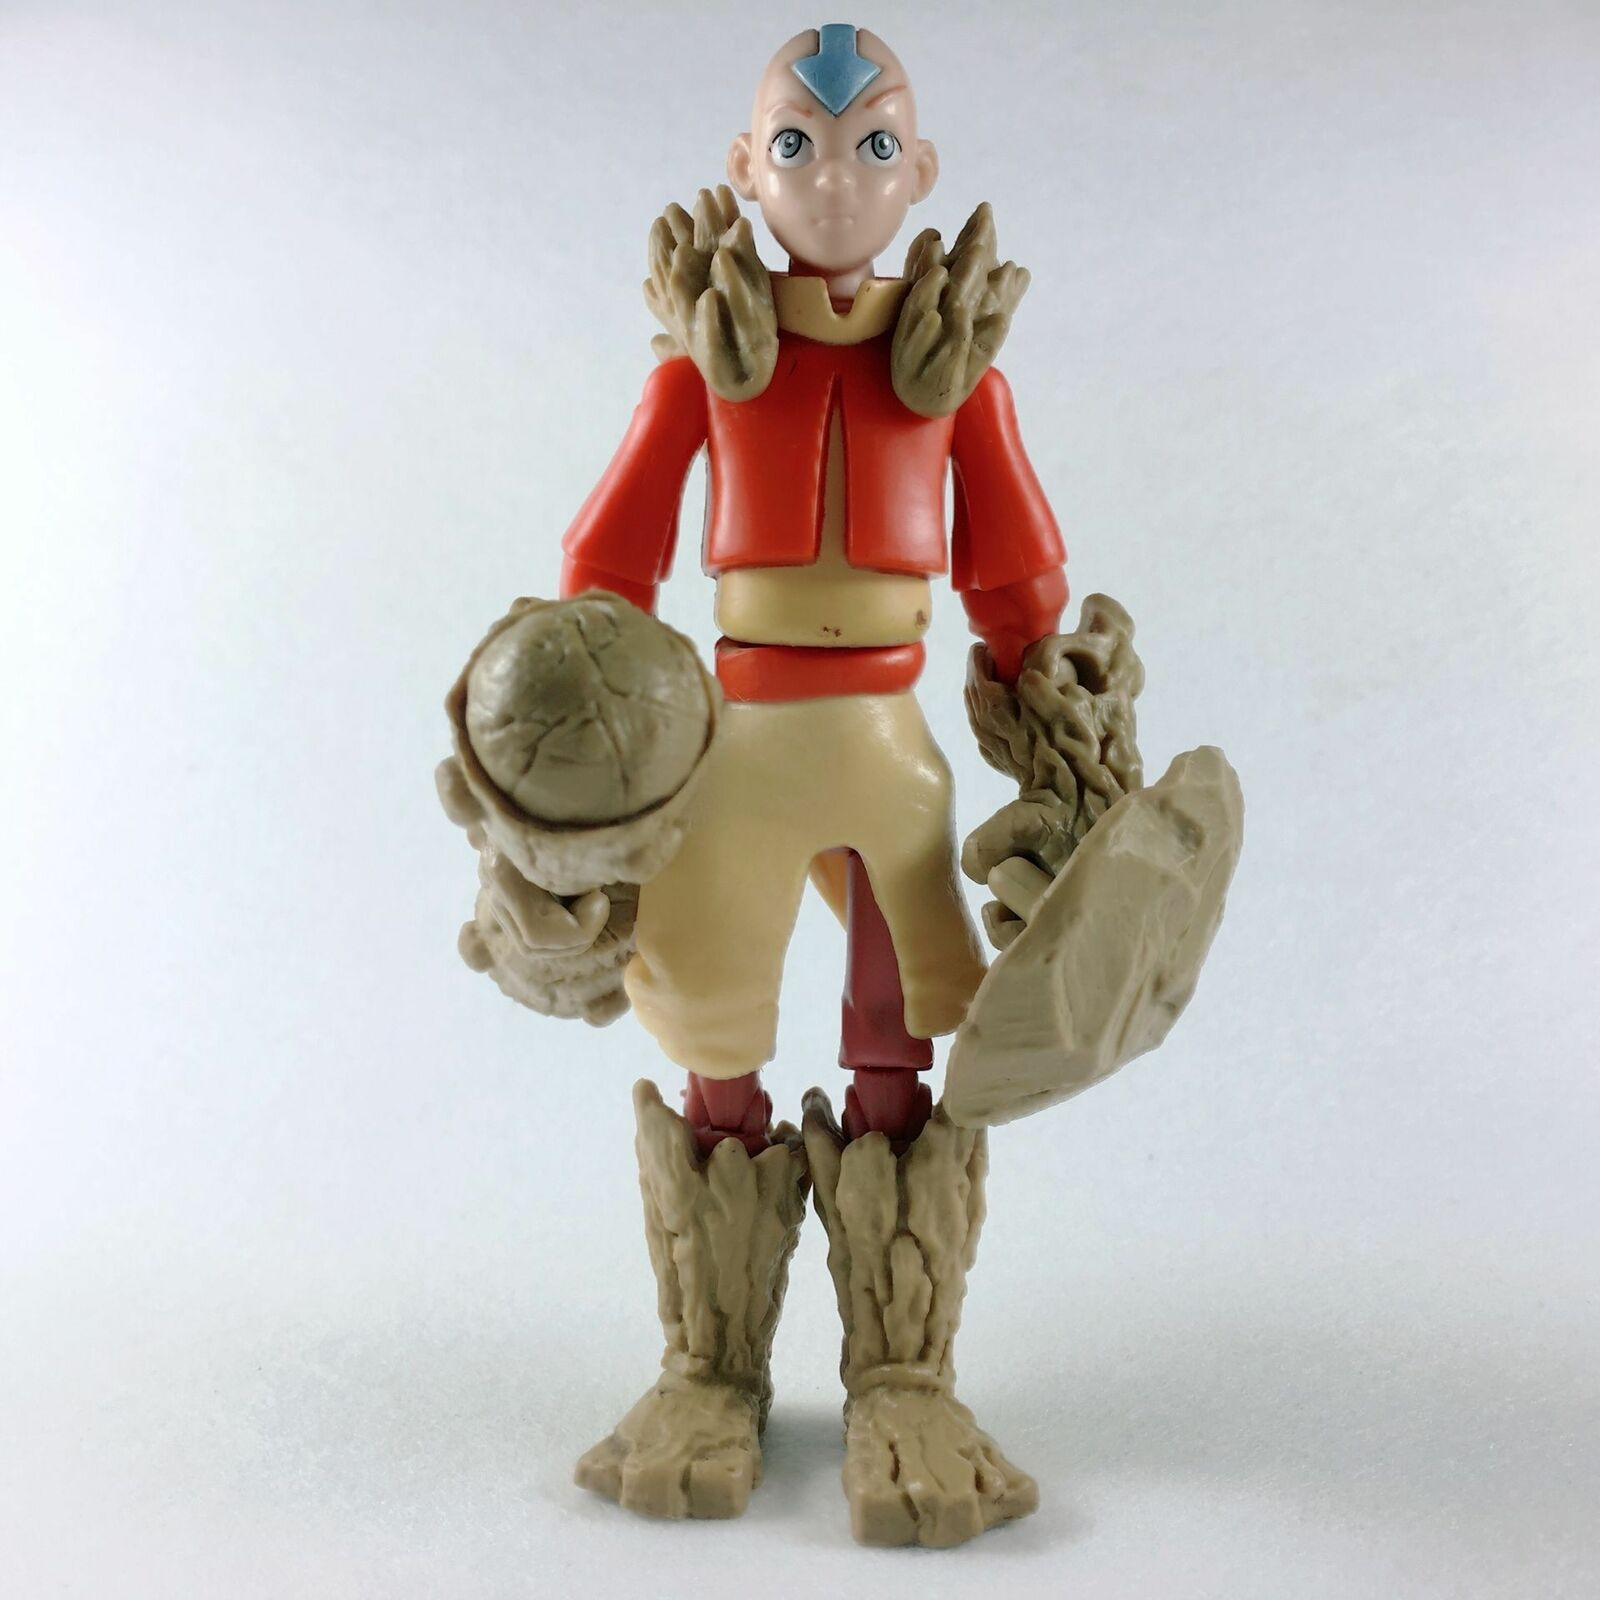 Avatar The Last Airbender Aang w  weapon Action Figure Collection 6in Mattel